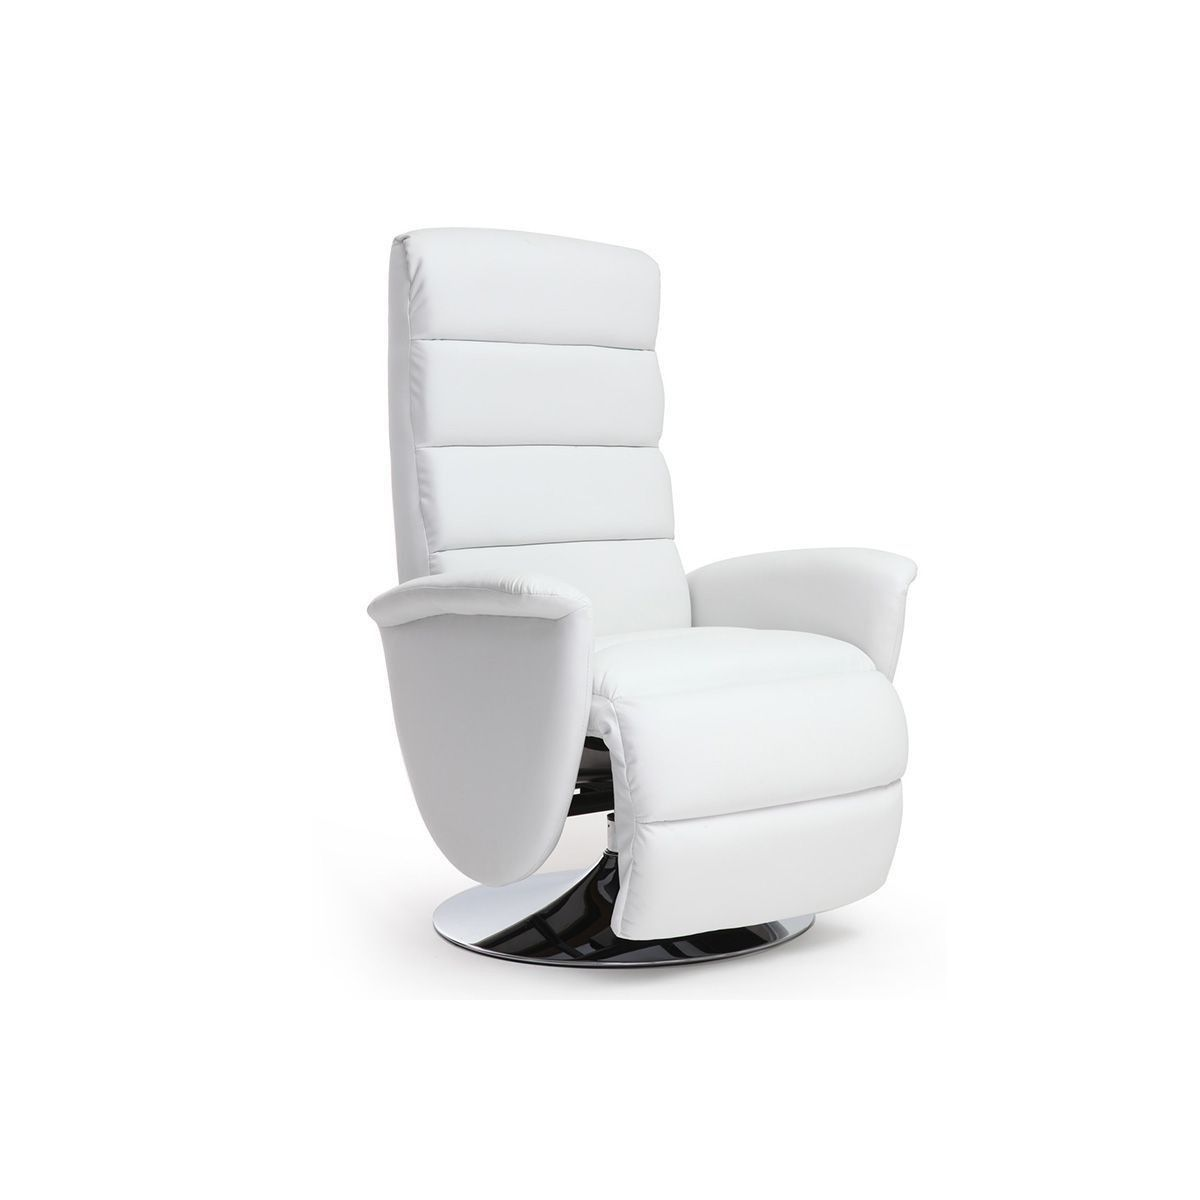 Fauteuil Relax Manuel Nelson Taille 1 Place Fauteuil Relax Manuel Fauteuil Relax Et Fauteuil Massant